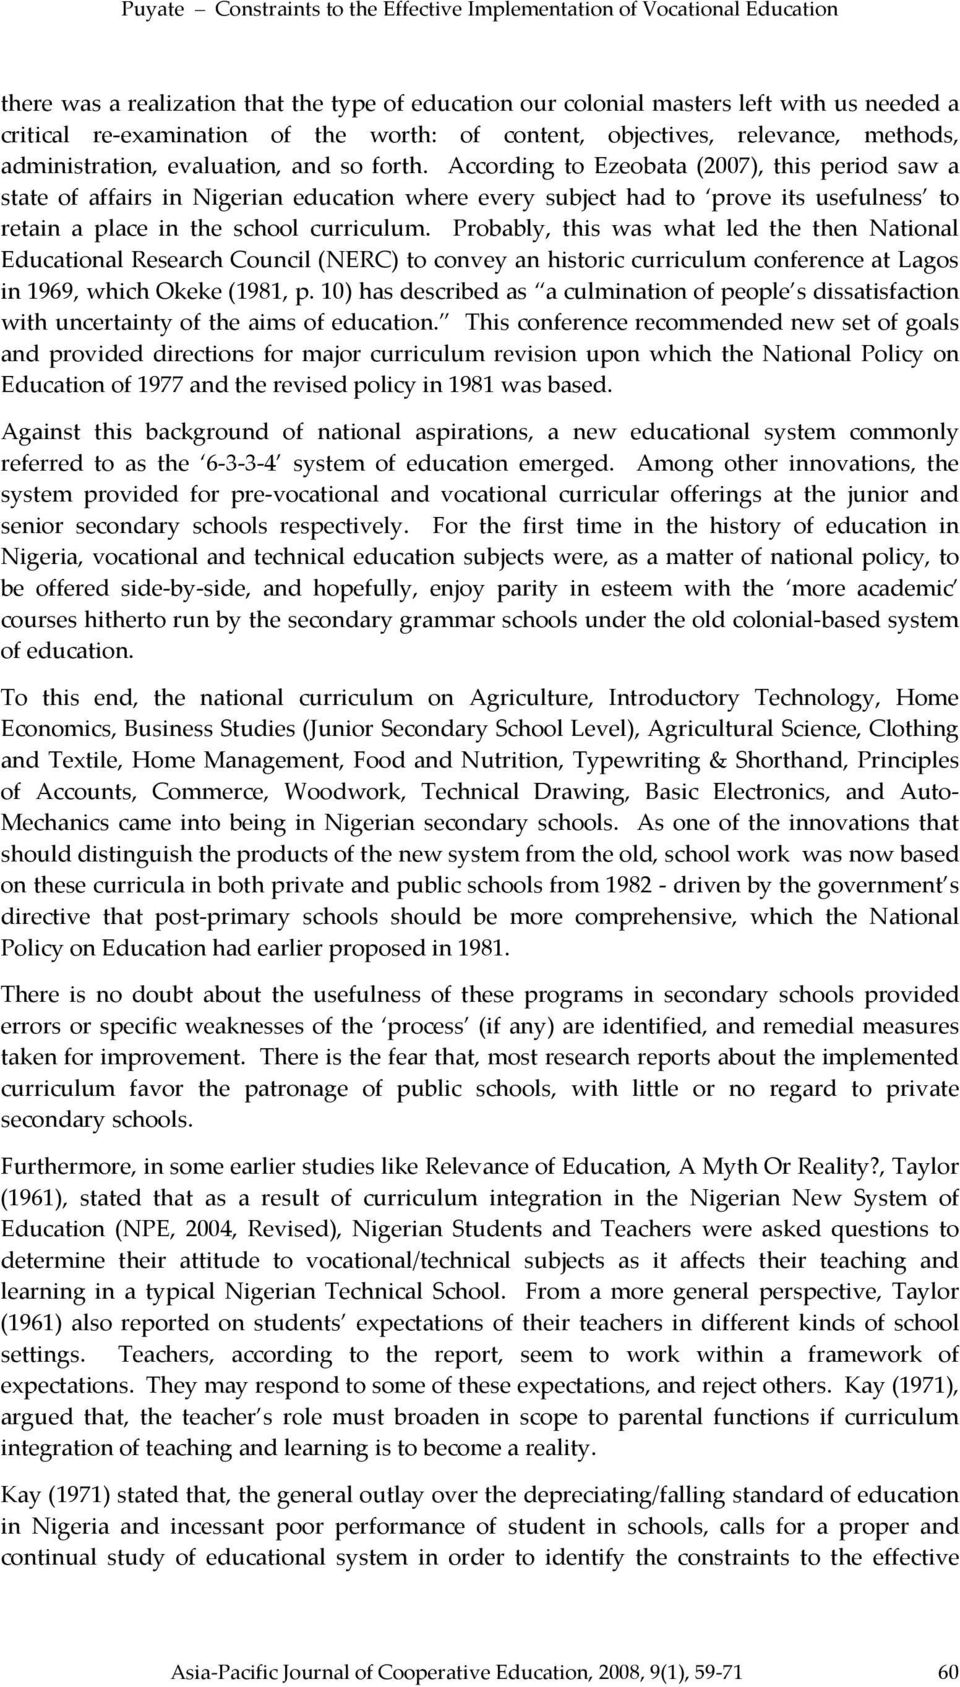 According to Ezeobata (2007), this period saw a state of affairs in Nigerian education where every subject had to prove its usefulness to retain a place in the school curriculum.